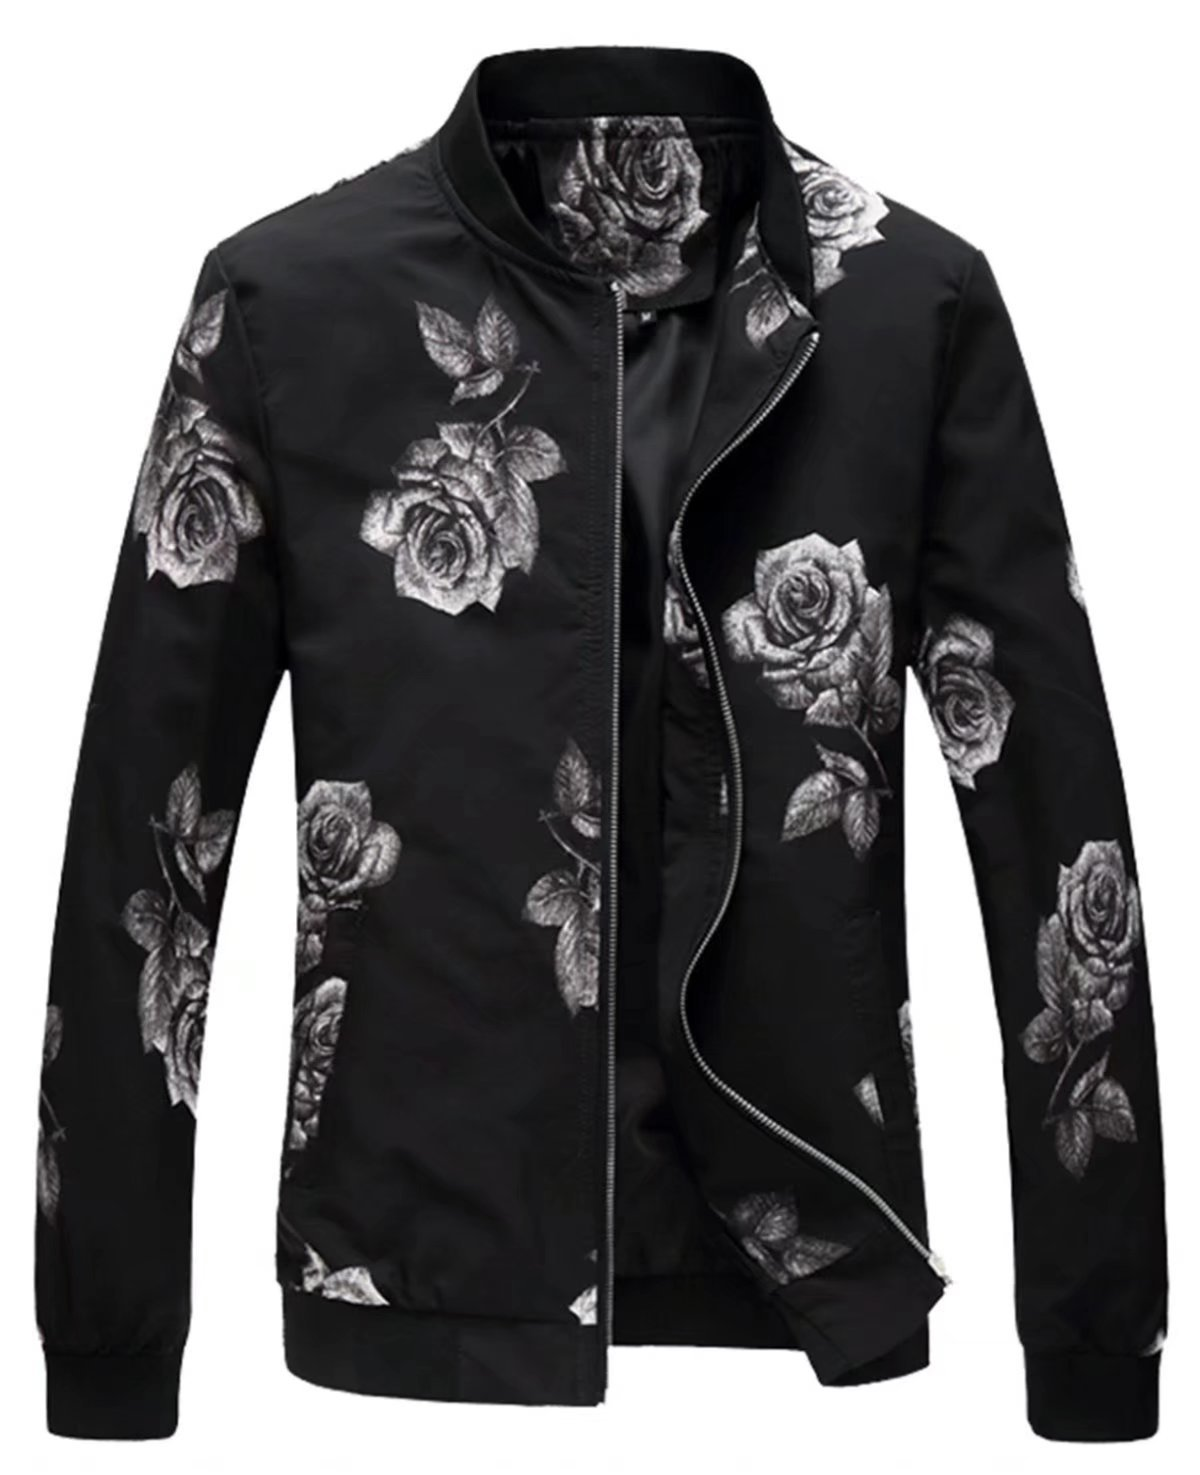 EMAOR Mens Men's Casual Flower Varsity Baseball Bomber Jacket Lightweight Floral Coat